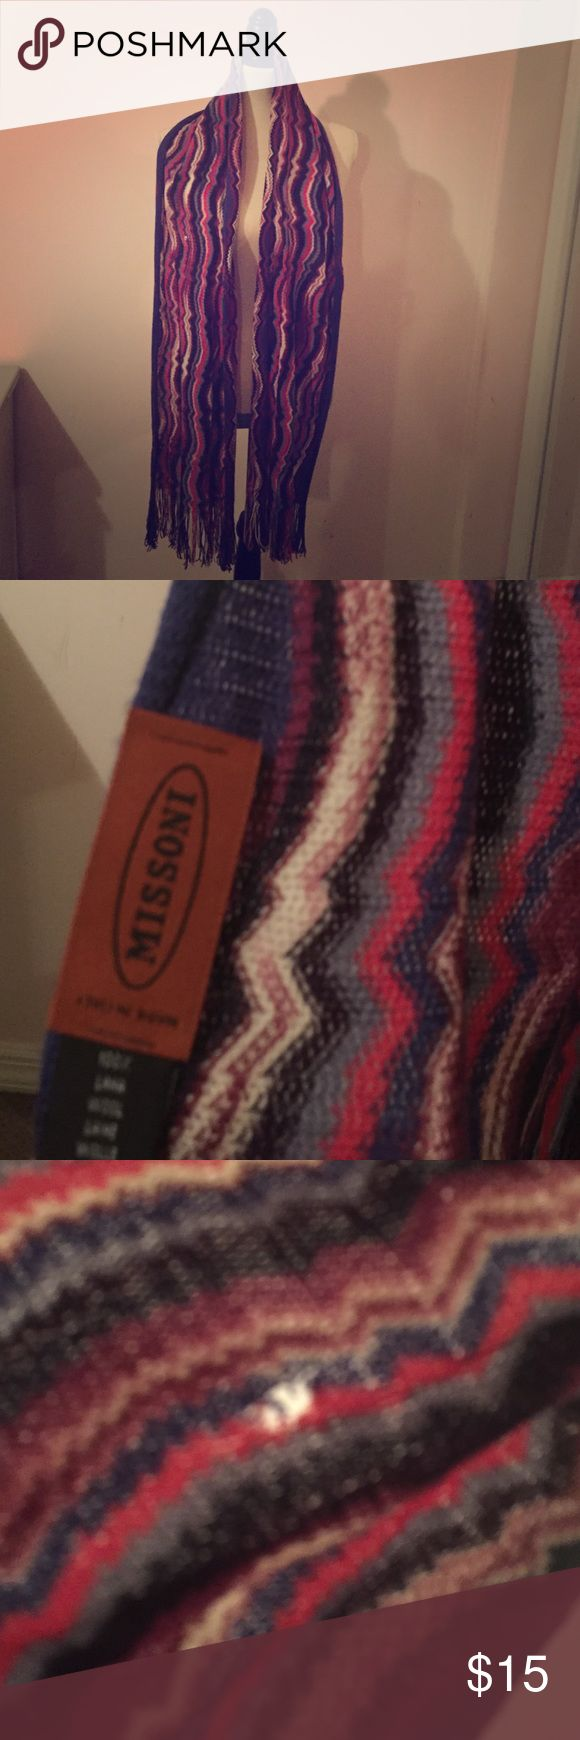 Missoni scarf Multi colored Missoni scarf does have some moth damage Missoni Accessories Scarves & Wraps